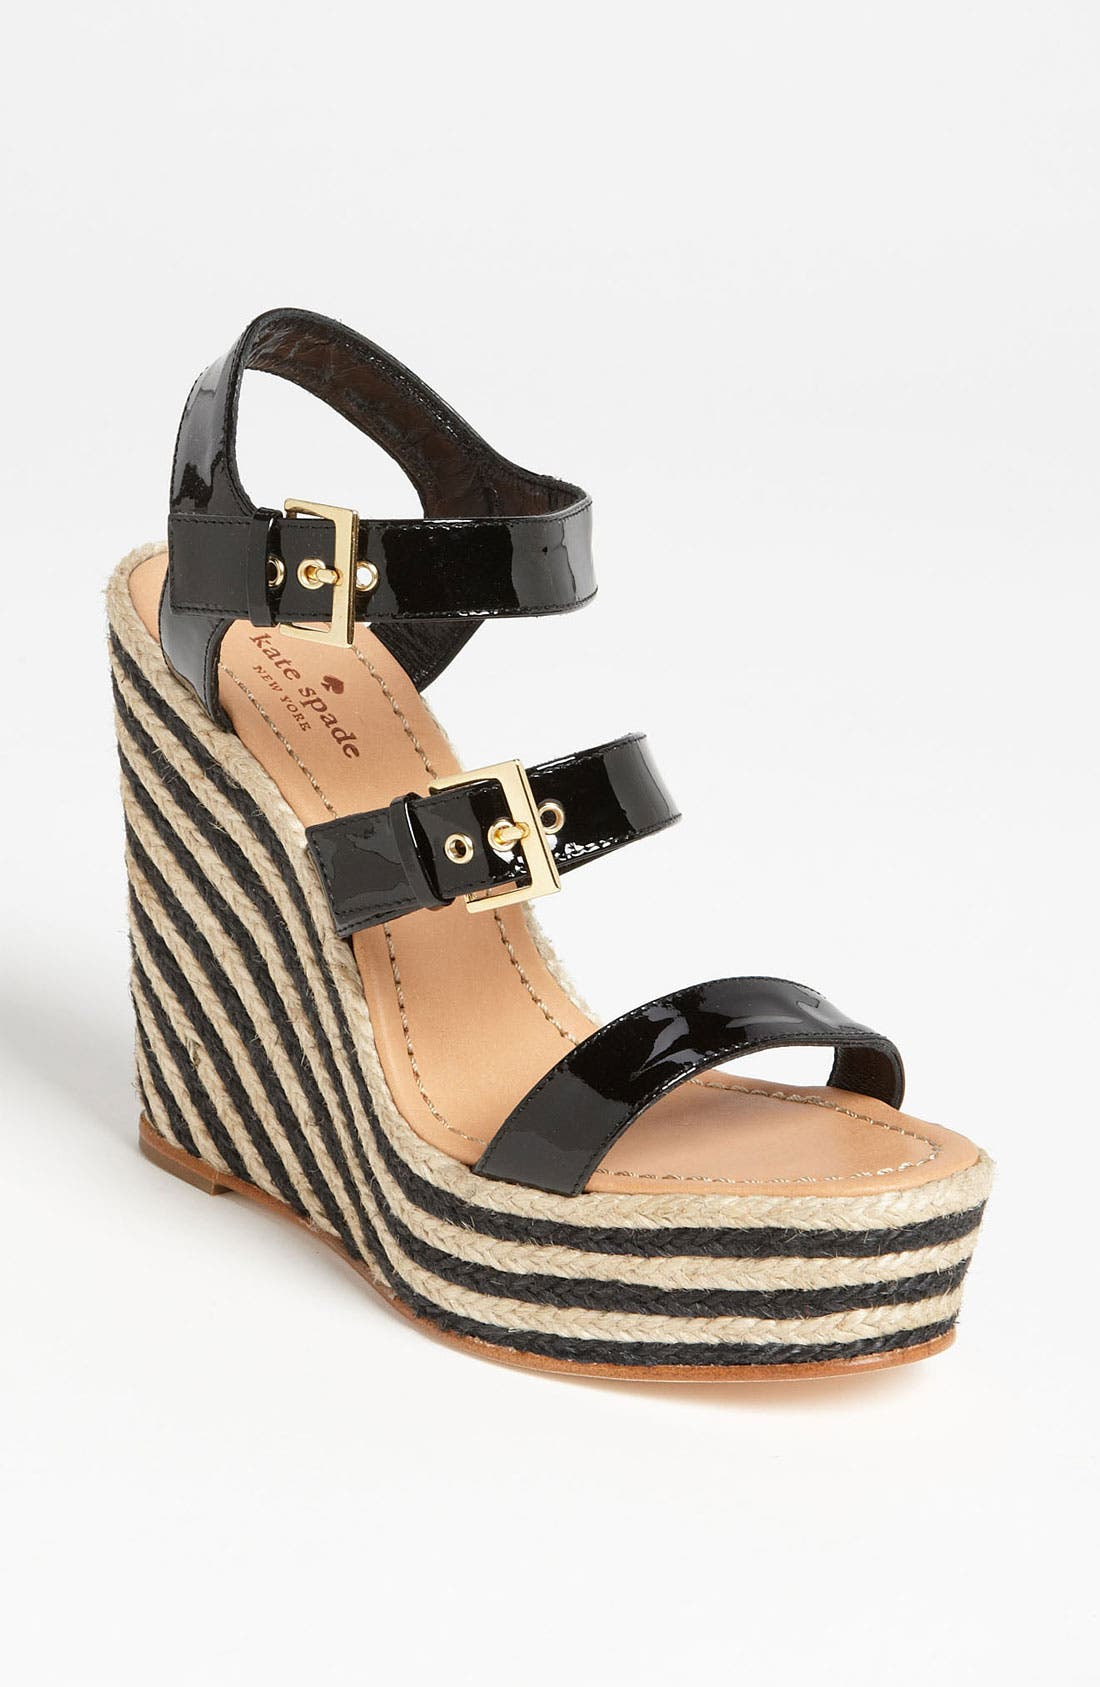 Alternate Image 1 Selected - kate spade new york 'lucie' espadrille sandal